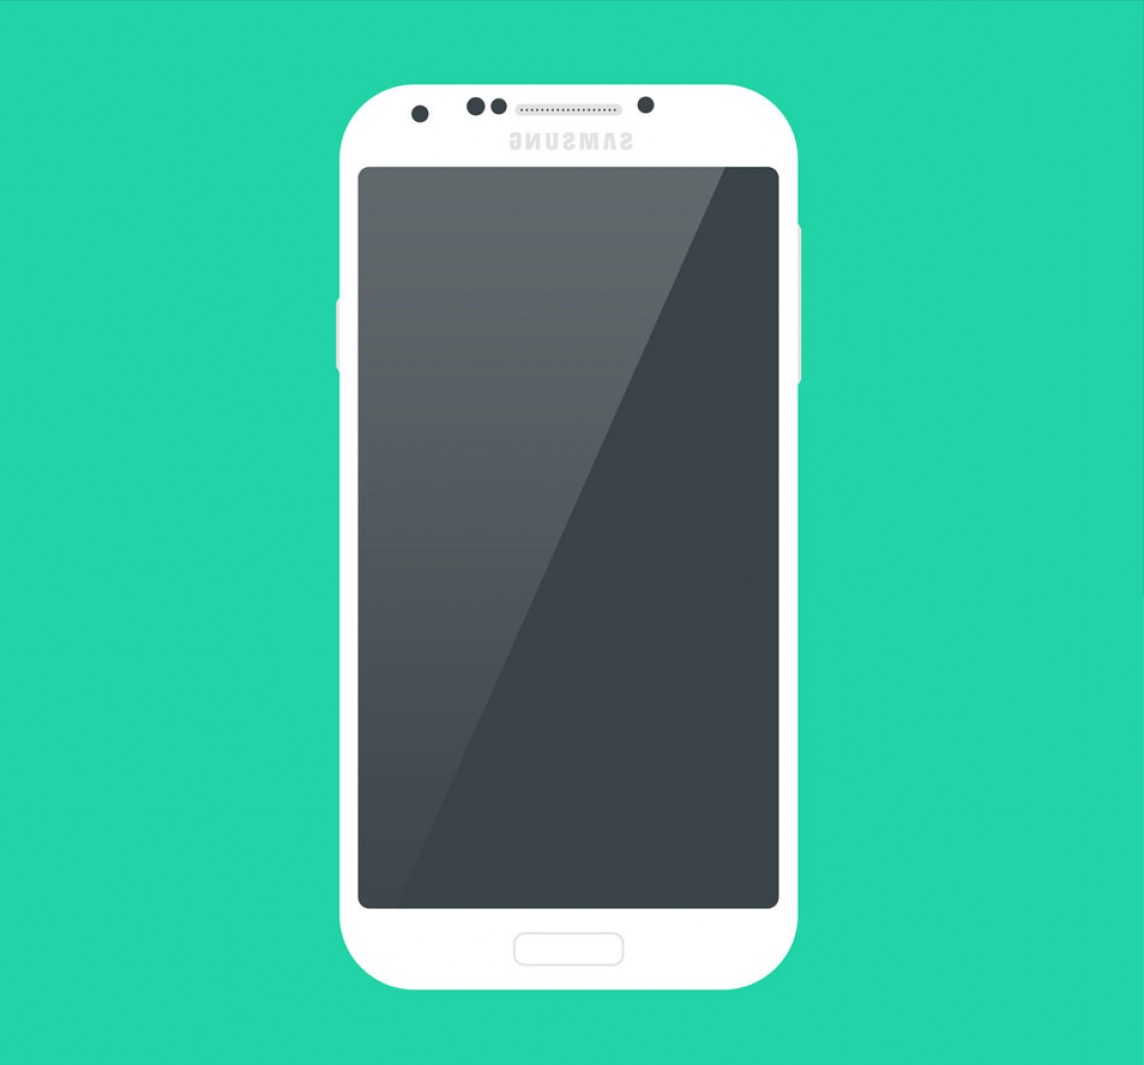 Vector Galaxy S4: Best Smartphone Mockup Psd Templates For Your Design